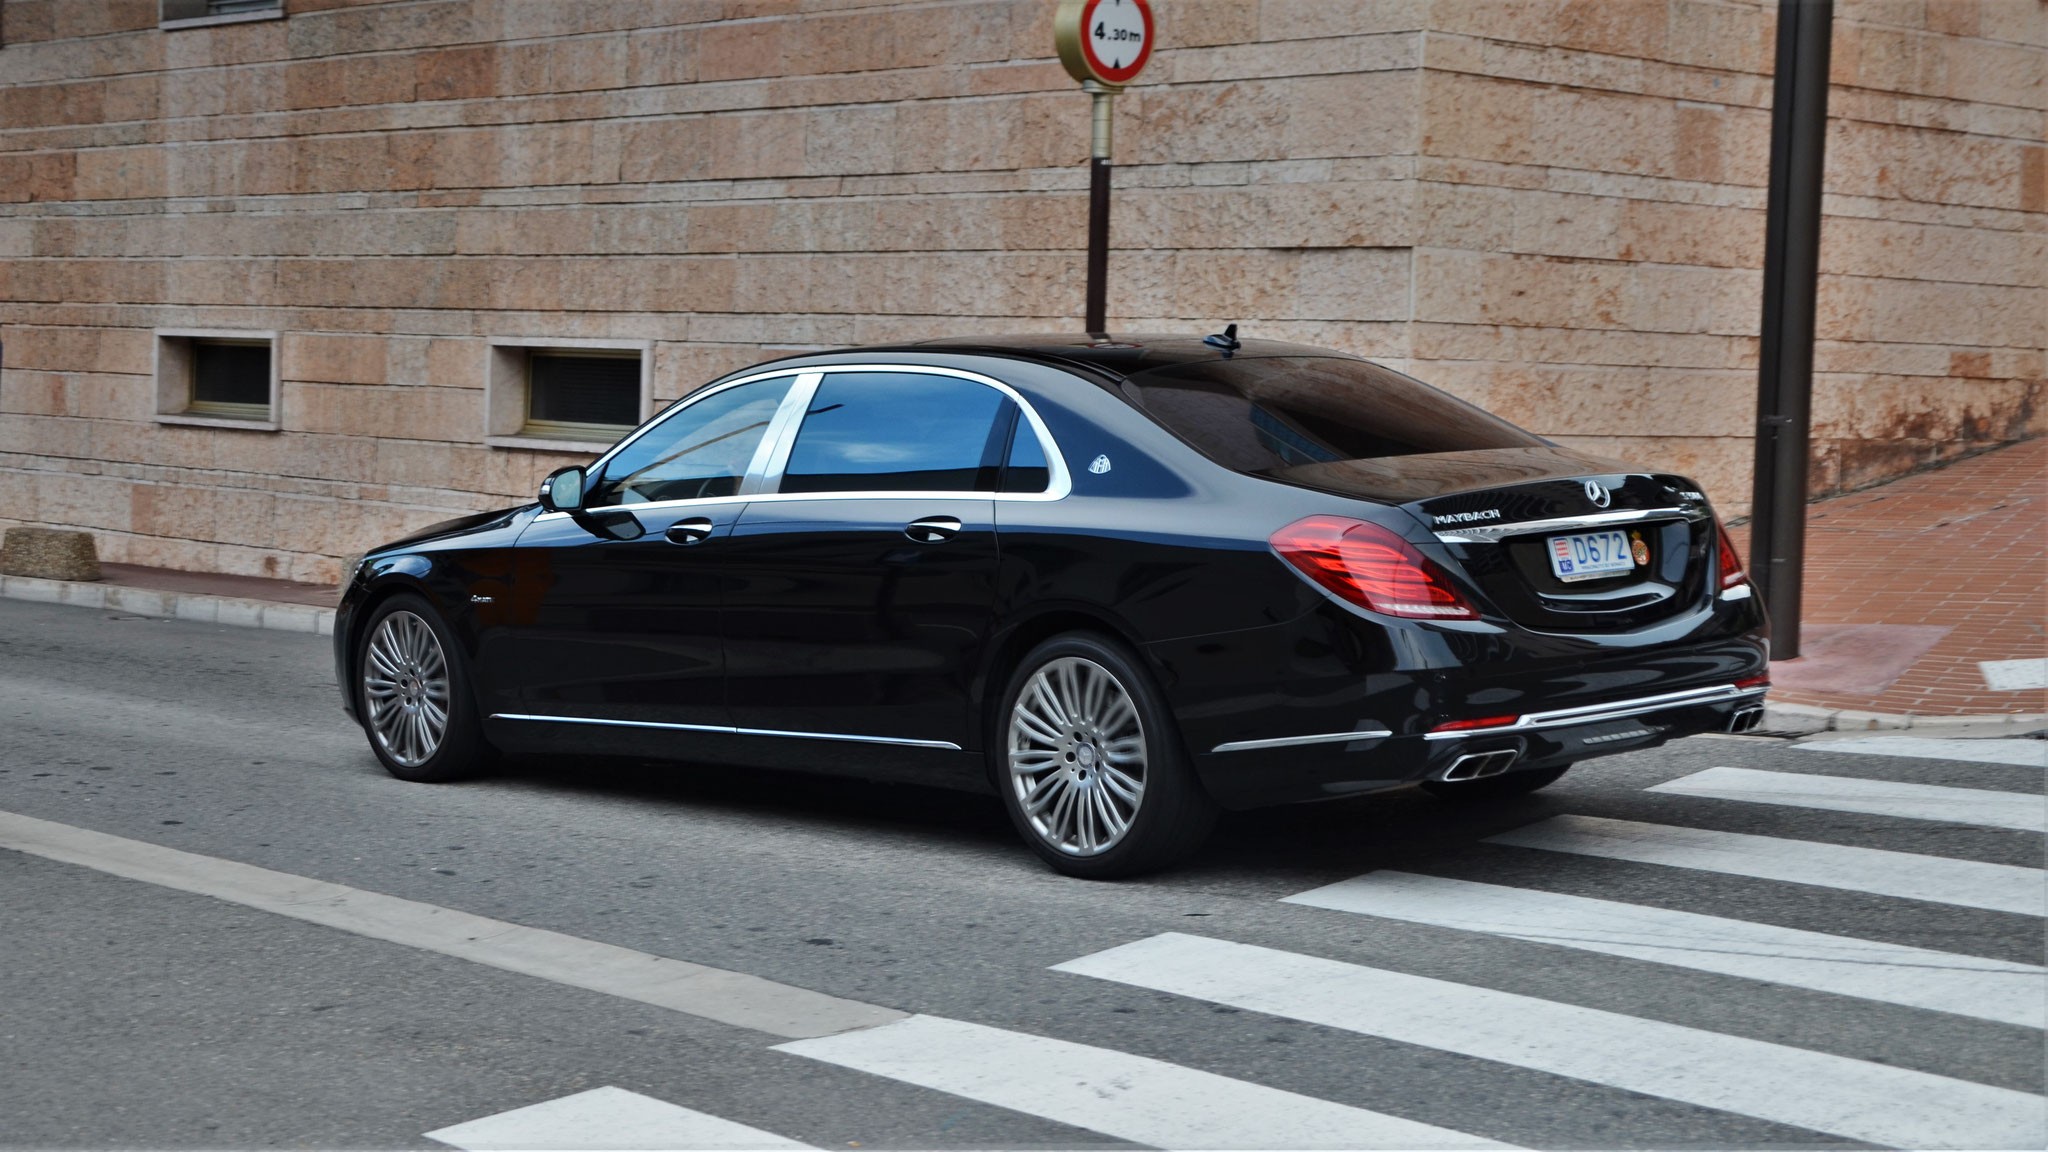 Mercedes Maybach S500 - D672 (MC)